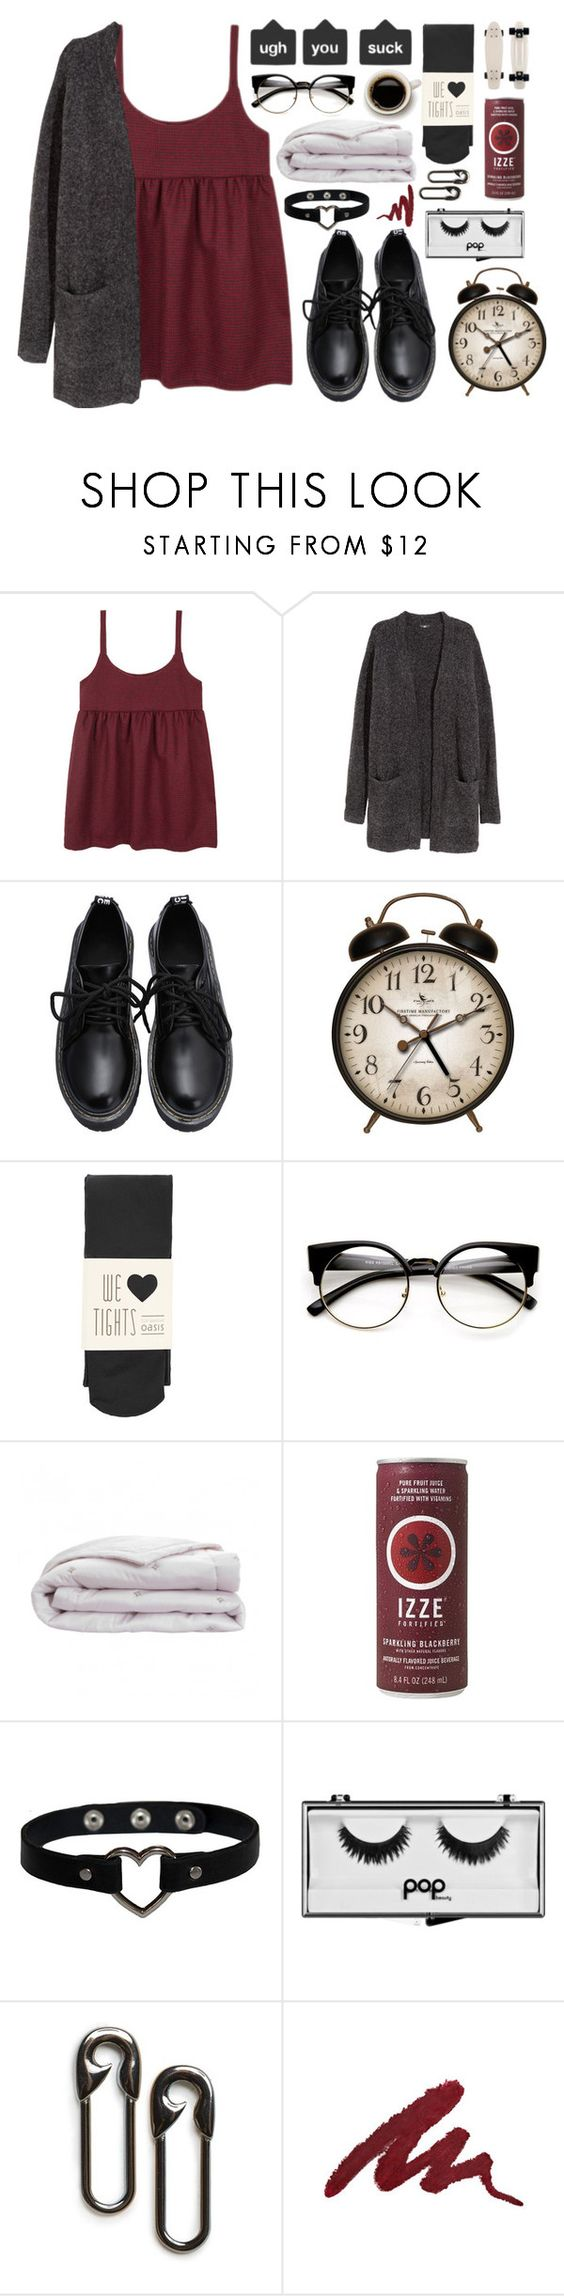 """""""when you feel my heat- look into my eyes, it's where my demons hide-"""" by sinemvtic ❤ liked on Polyvore featuring H&M, Oasis, Pop Beauty, MANGO and Urban Decay"""